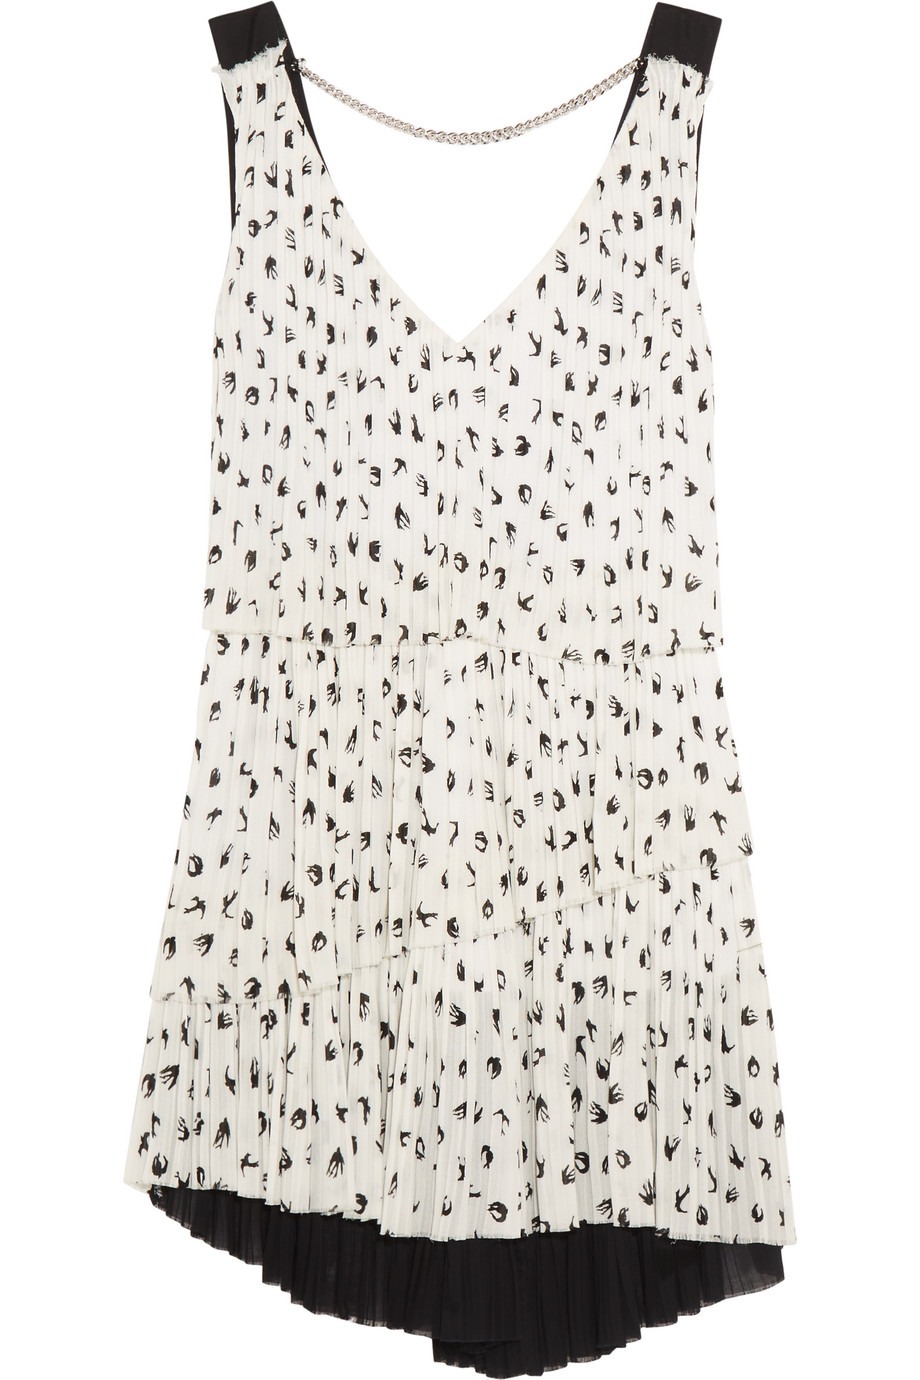 Sonia Rykiel Pleated Printed Crepe Mini Dress, White, Women's, Size: 34